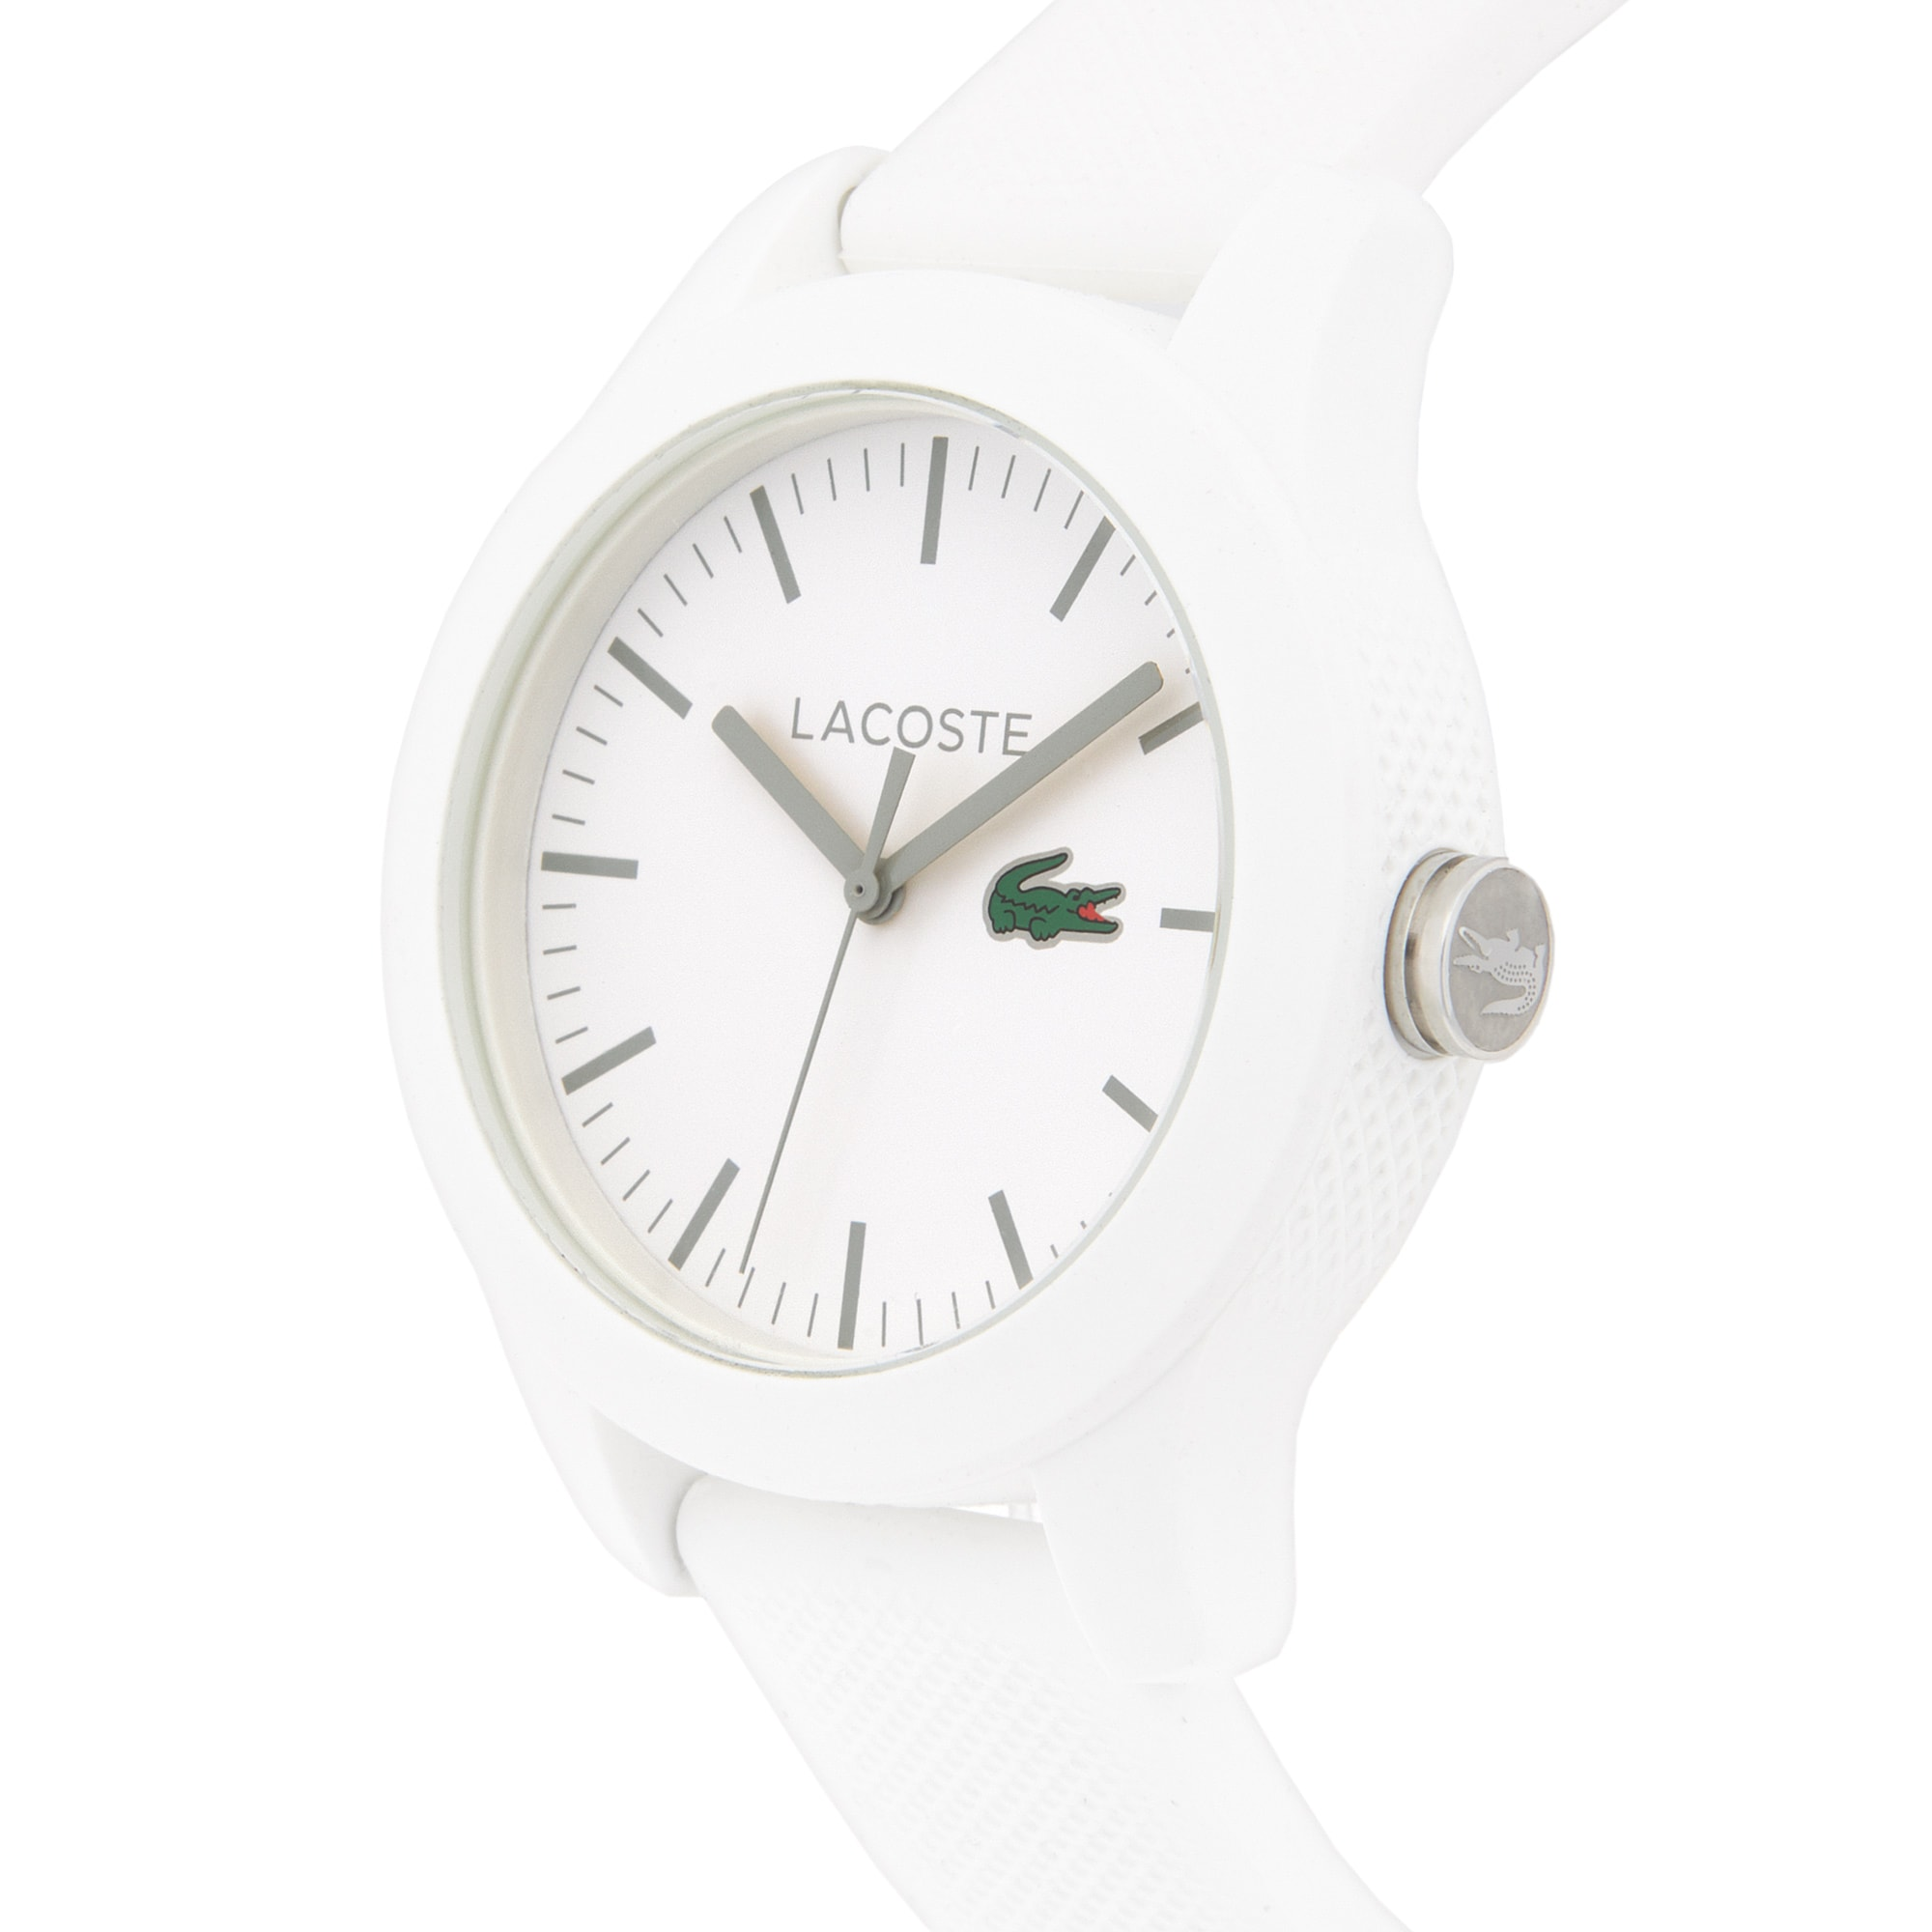 Men's Lacoste 12.12 Watch - White Edition